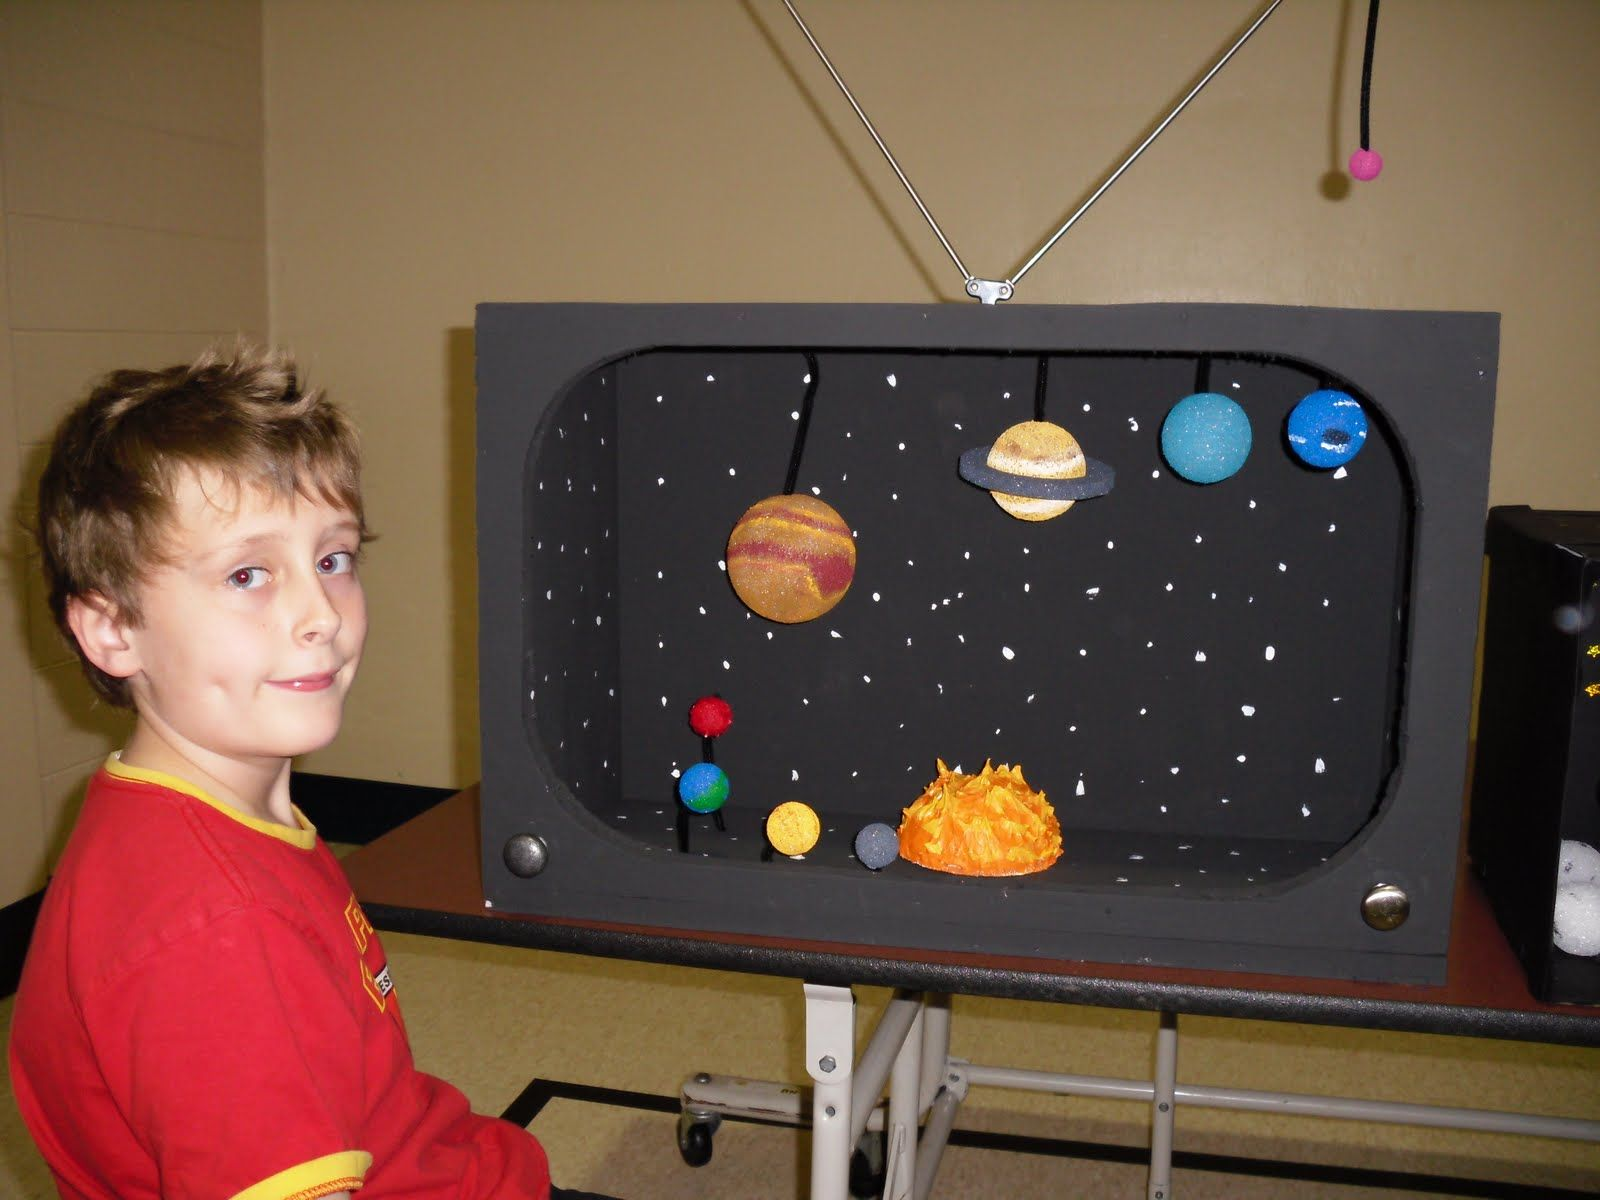 solar system science projects for kids images for the home solar system science projects for kids images